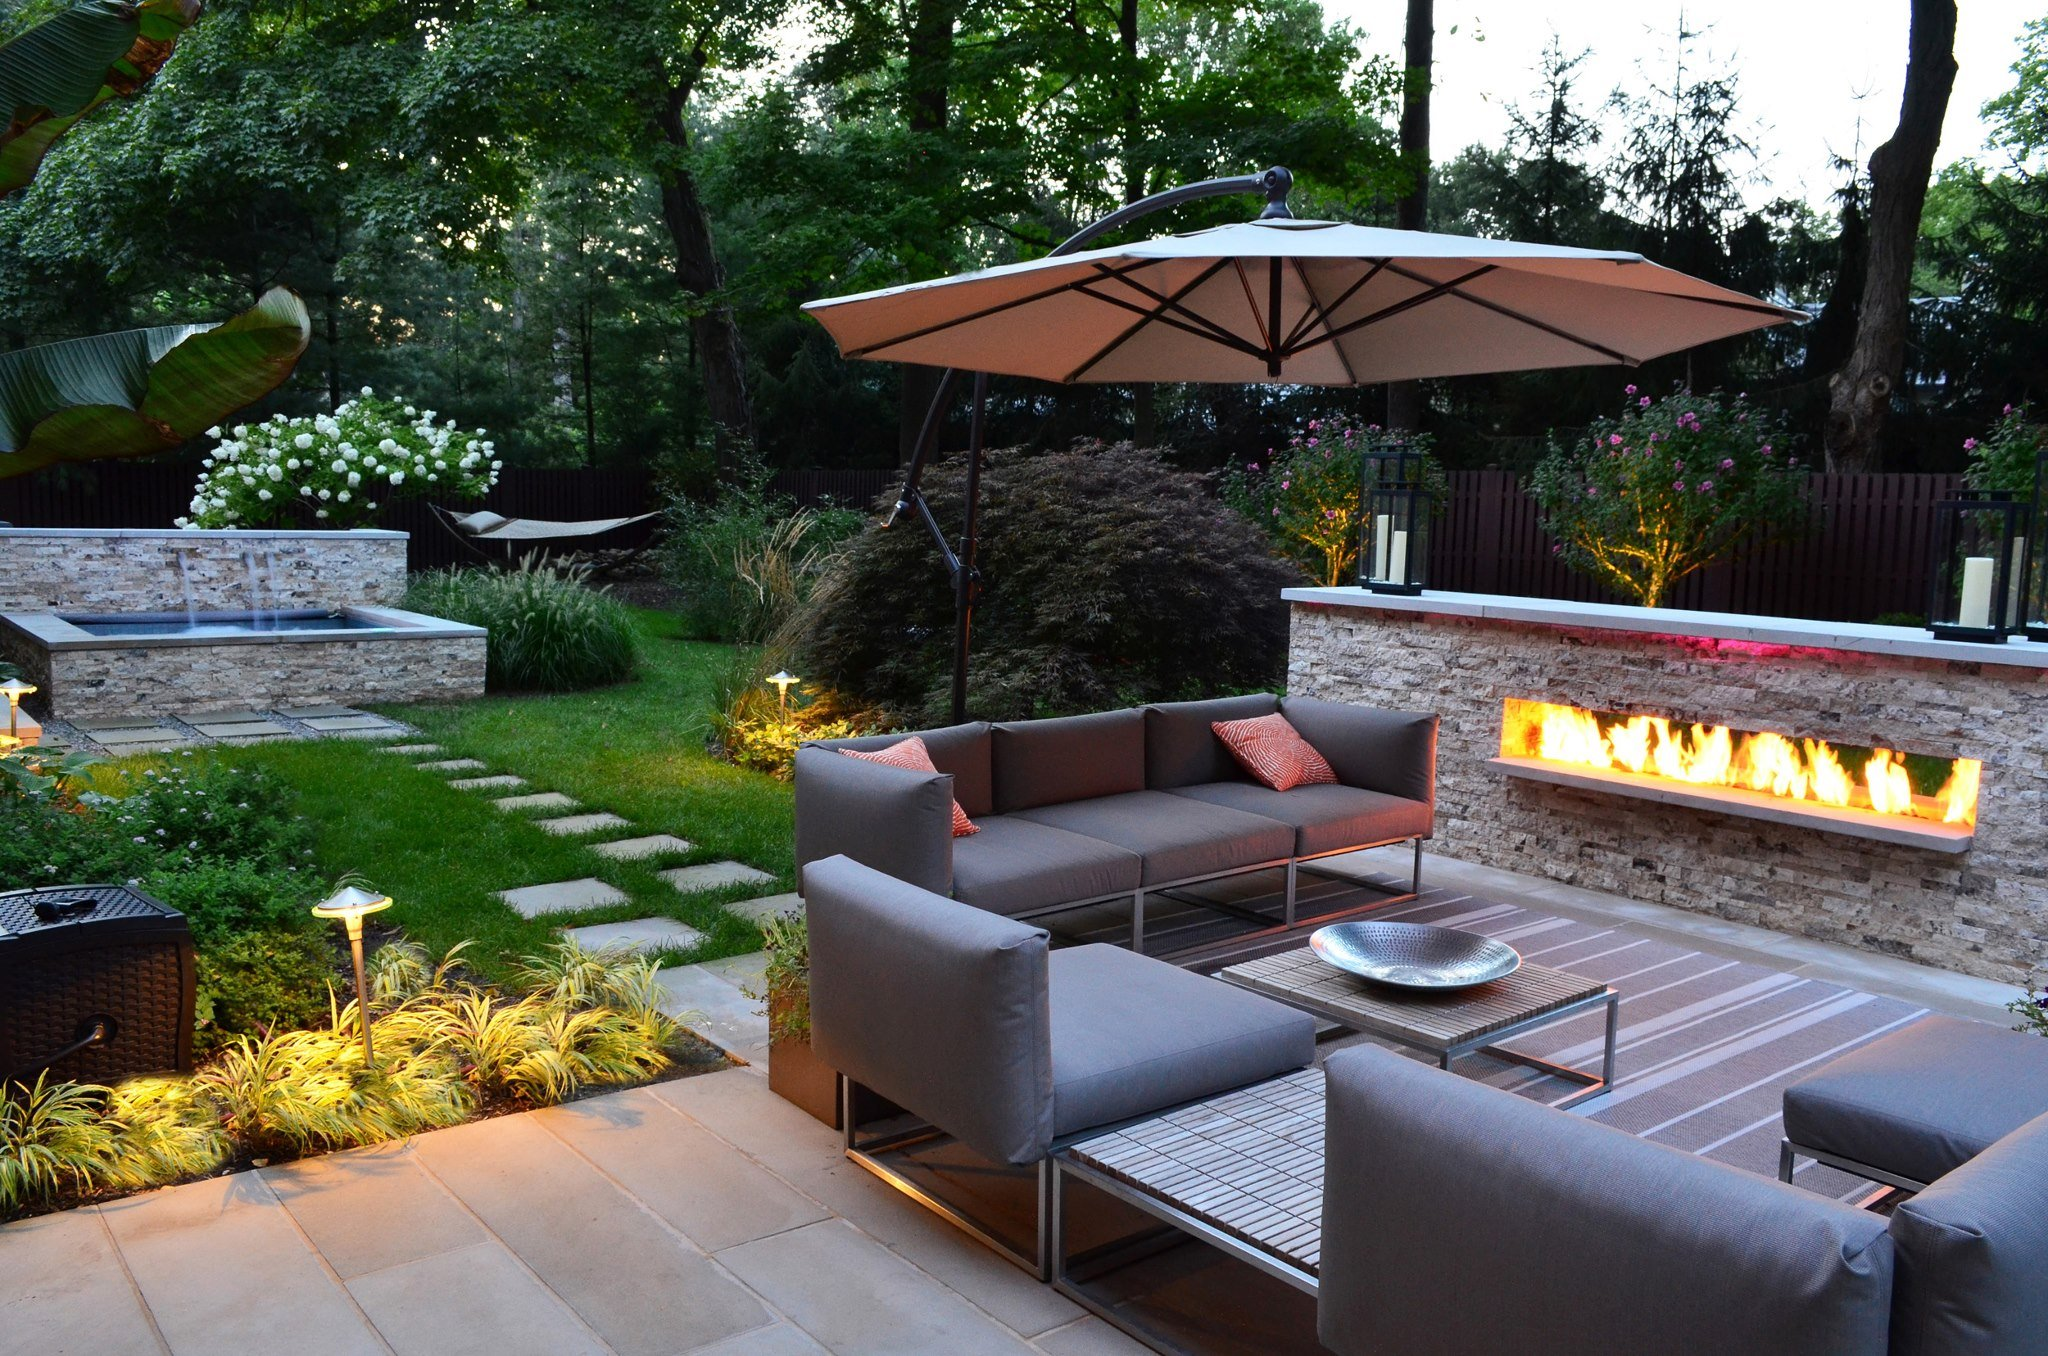 exterior-patio-landscaping-witching-design-ideas-of-backyard-landscaping-with-stone-garden-path-also-green-grass-and-rectangle-shape-pond-waterfall-concrete-floor-gray-color-outdoor-sofas-fireplace-wh.jpg